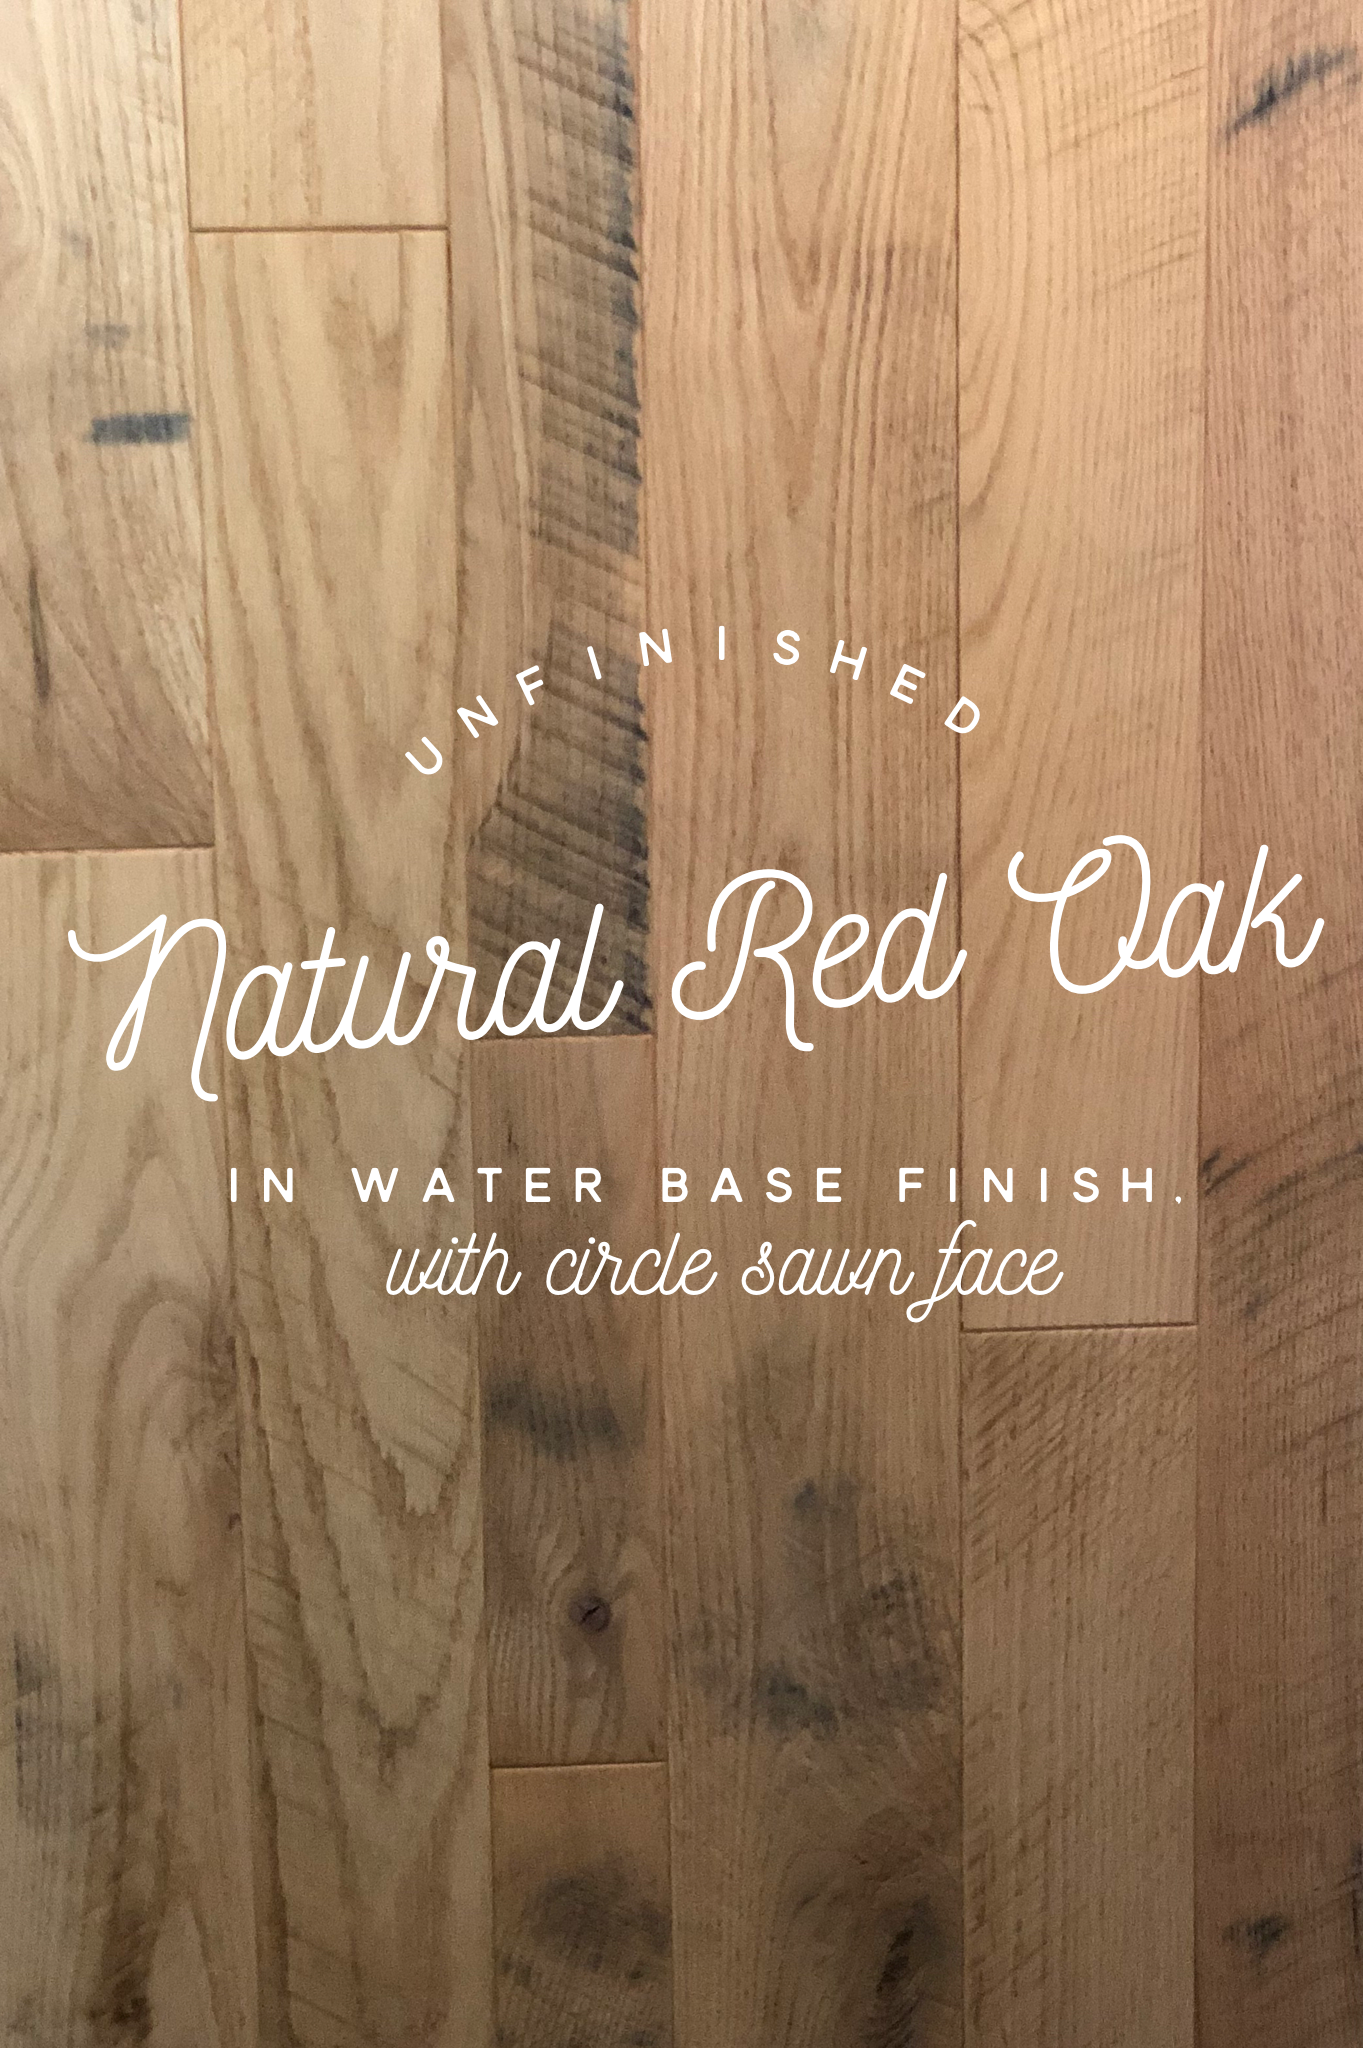 Munday hardwoods inc is offering unfinished natural red oak circle